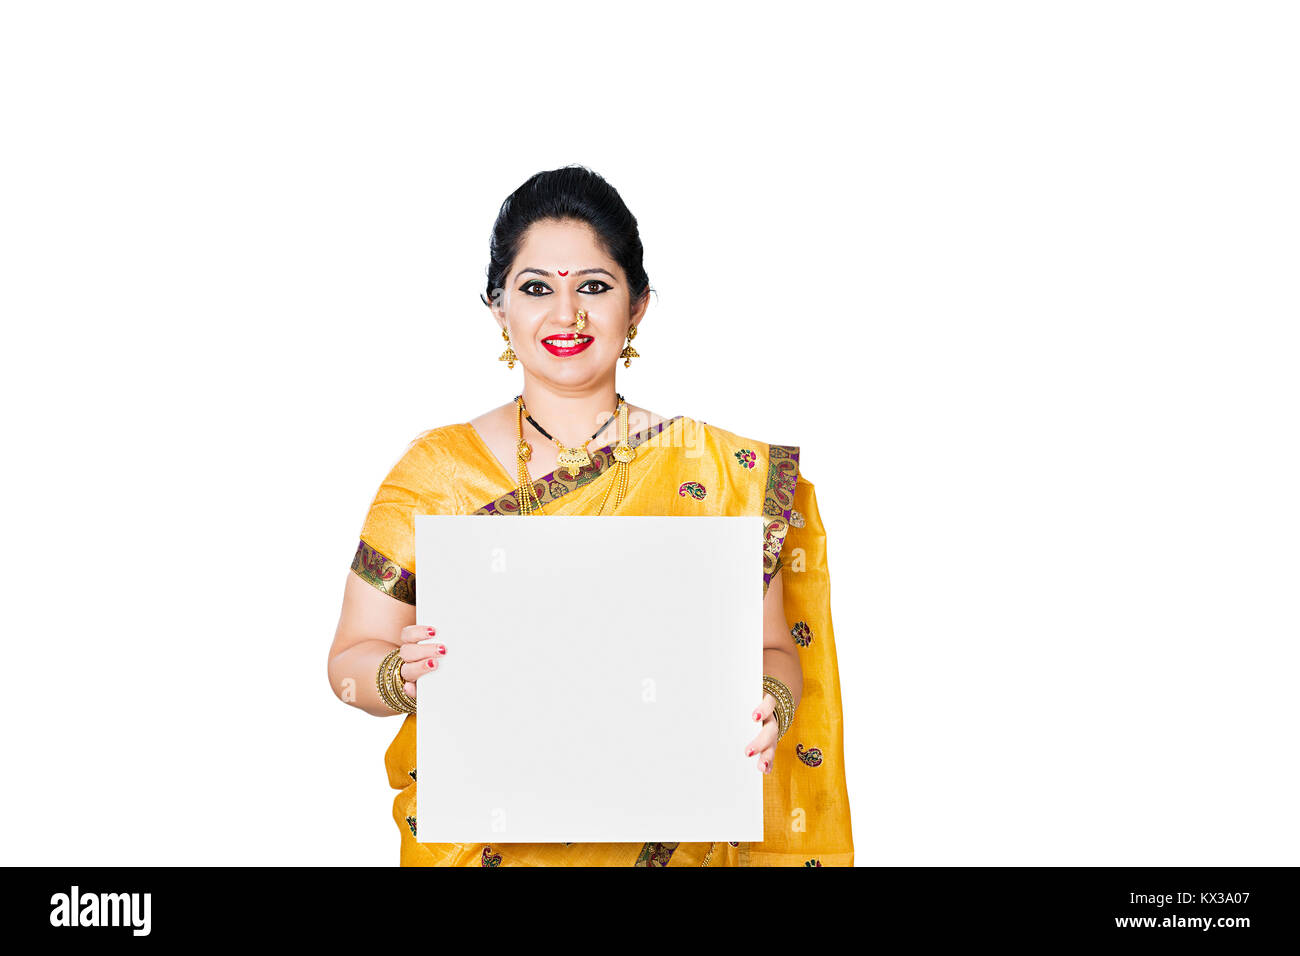 Indian Marathi Lady Housewife Showing Message Board - Stock Image